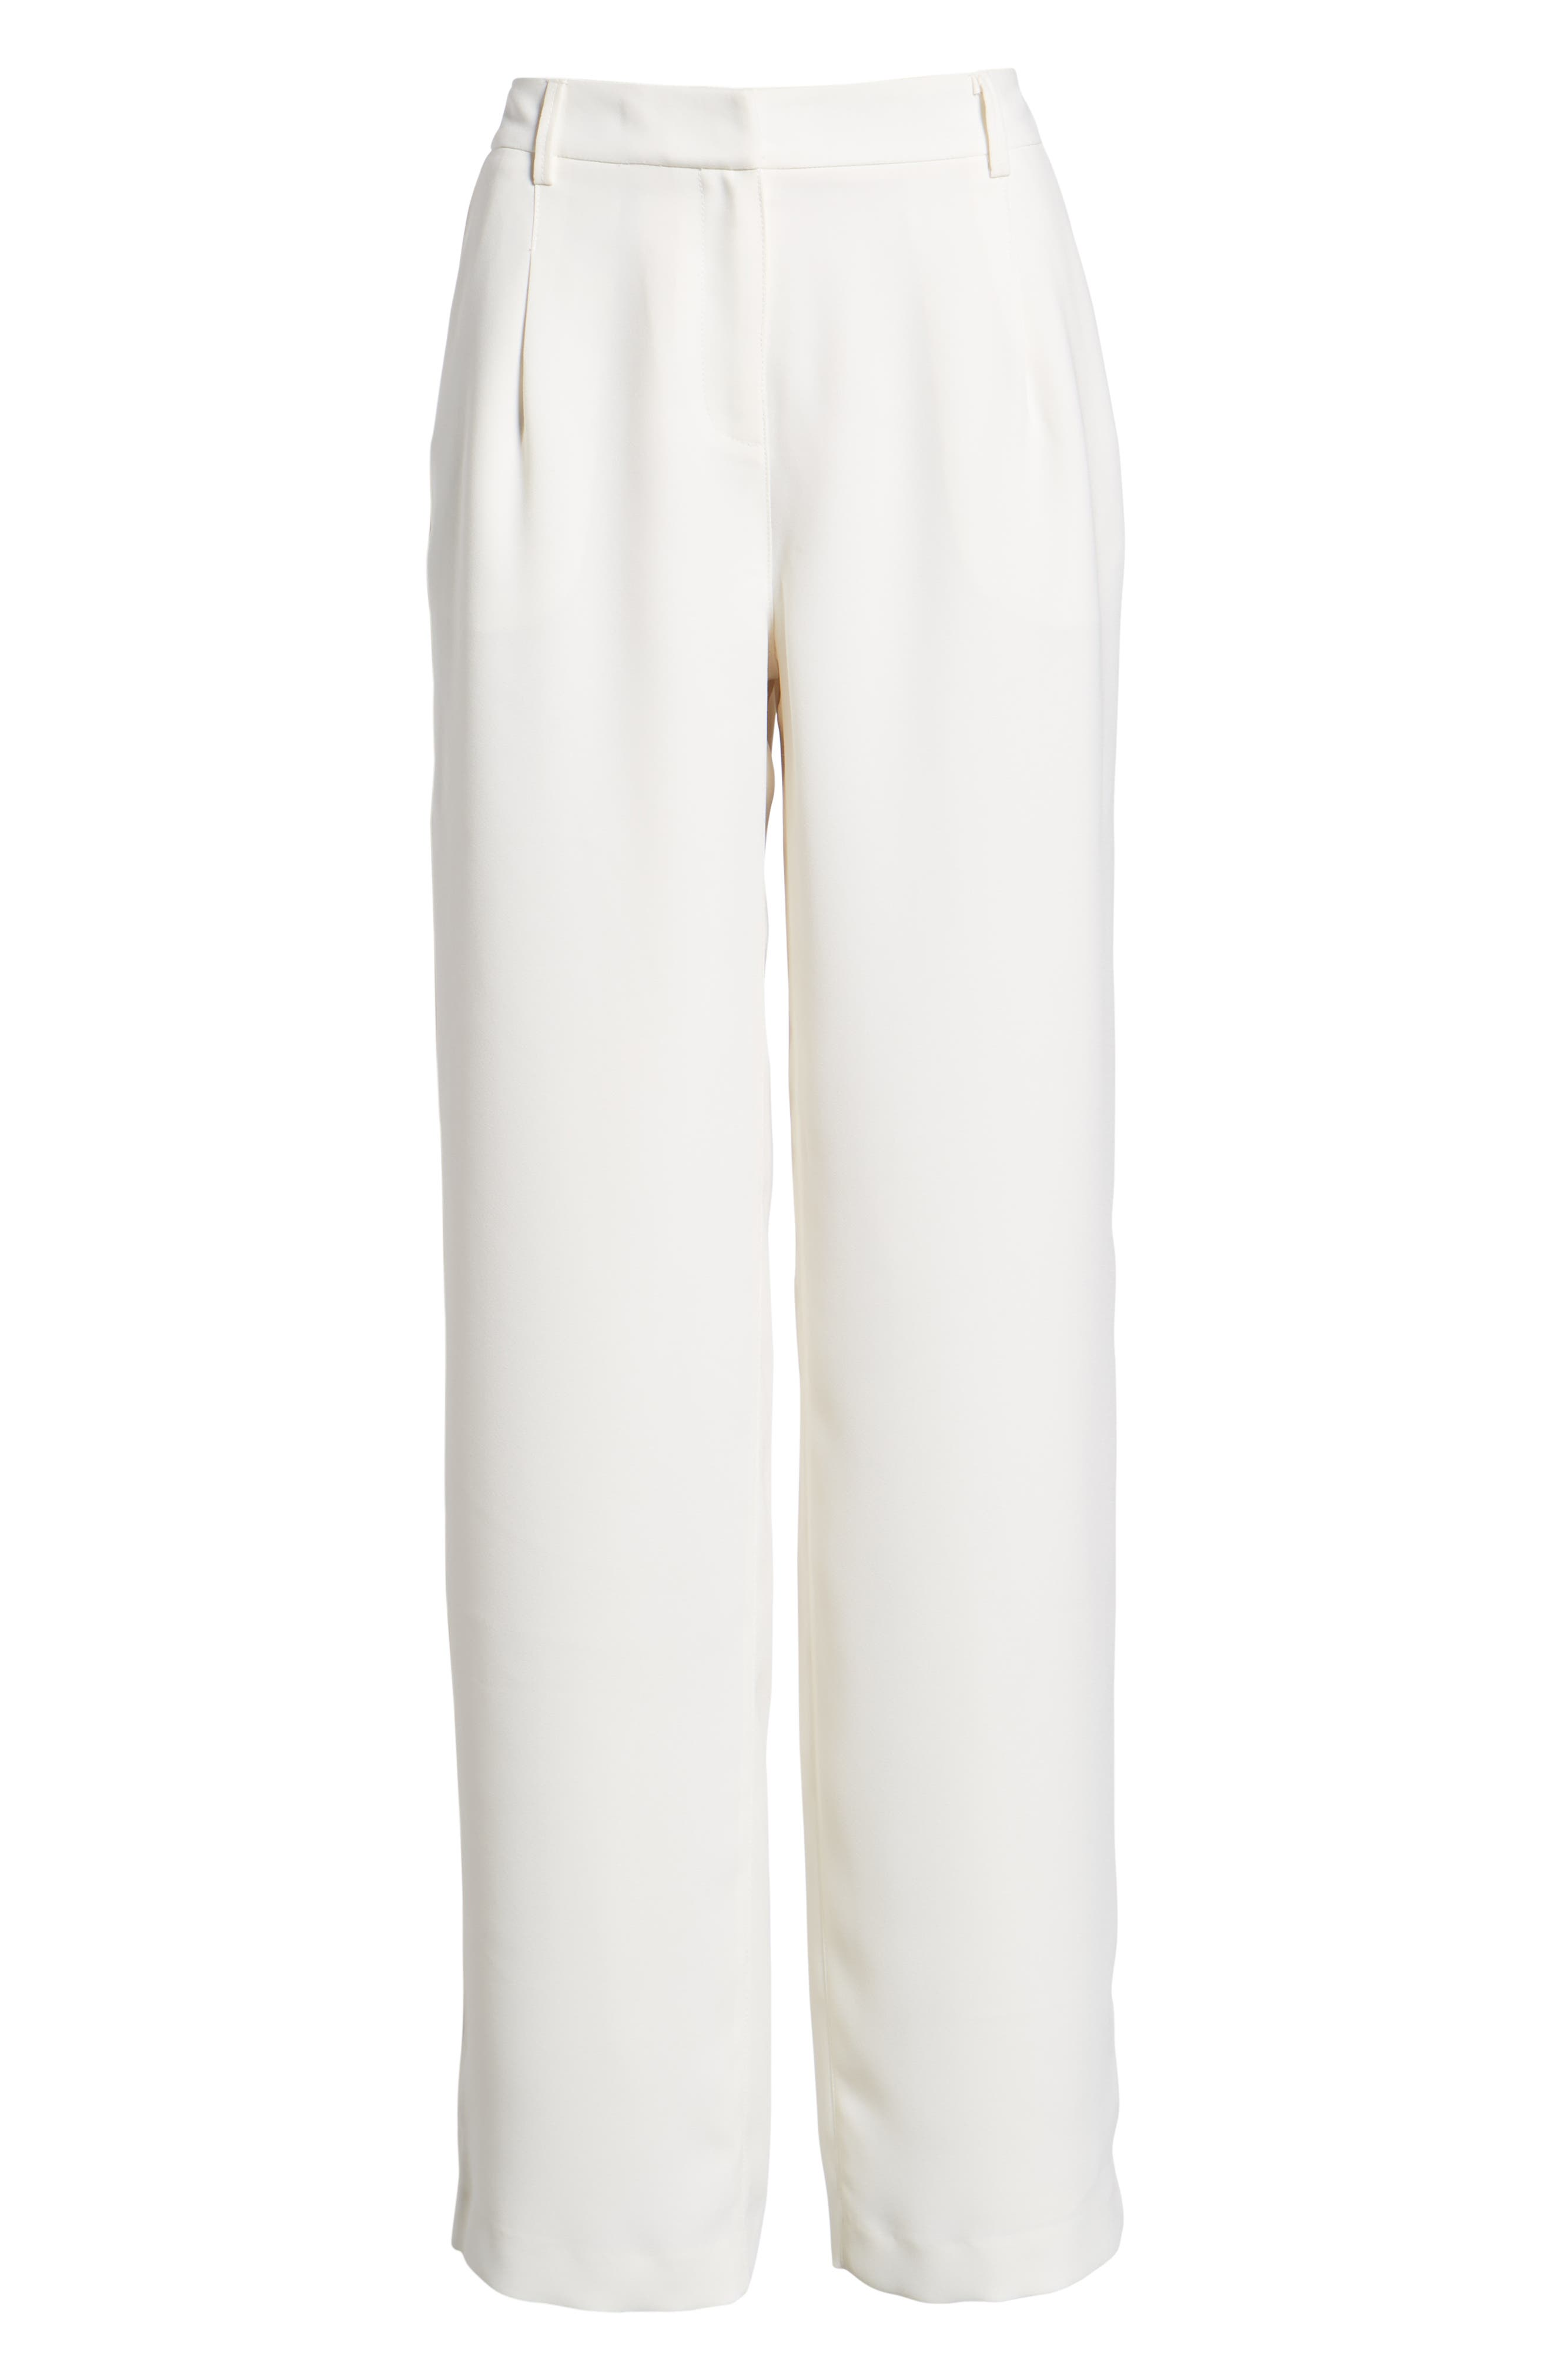 SOMETHING NAVY, Pleated Wide Leg Trousers, Alternate thumbnail 8, color, IVORY